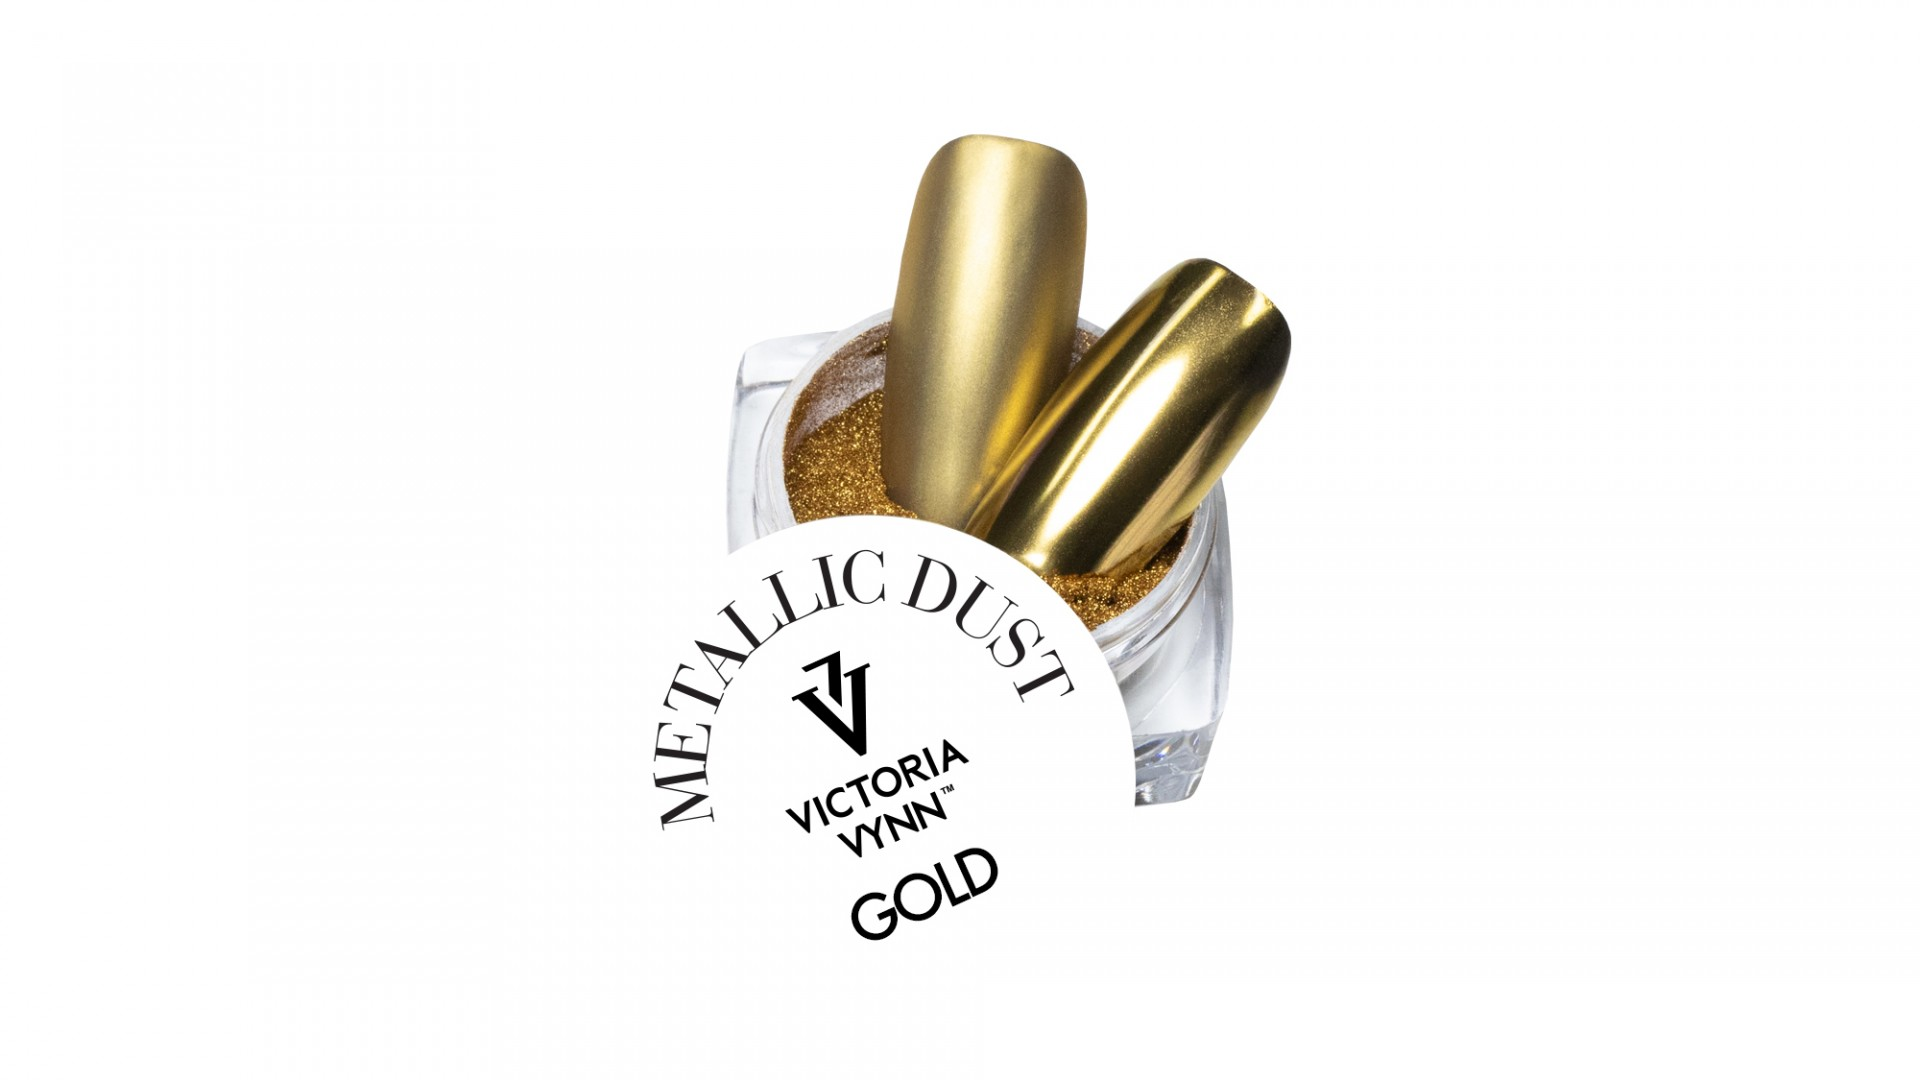 Victoria Vynn Metallic Dusts n.º2 - Gold